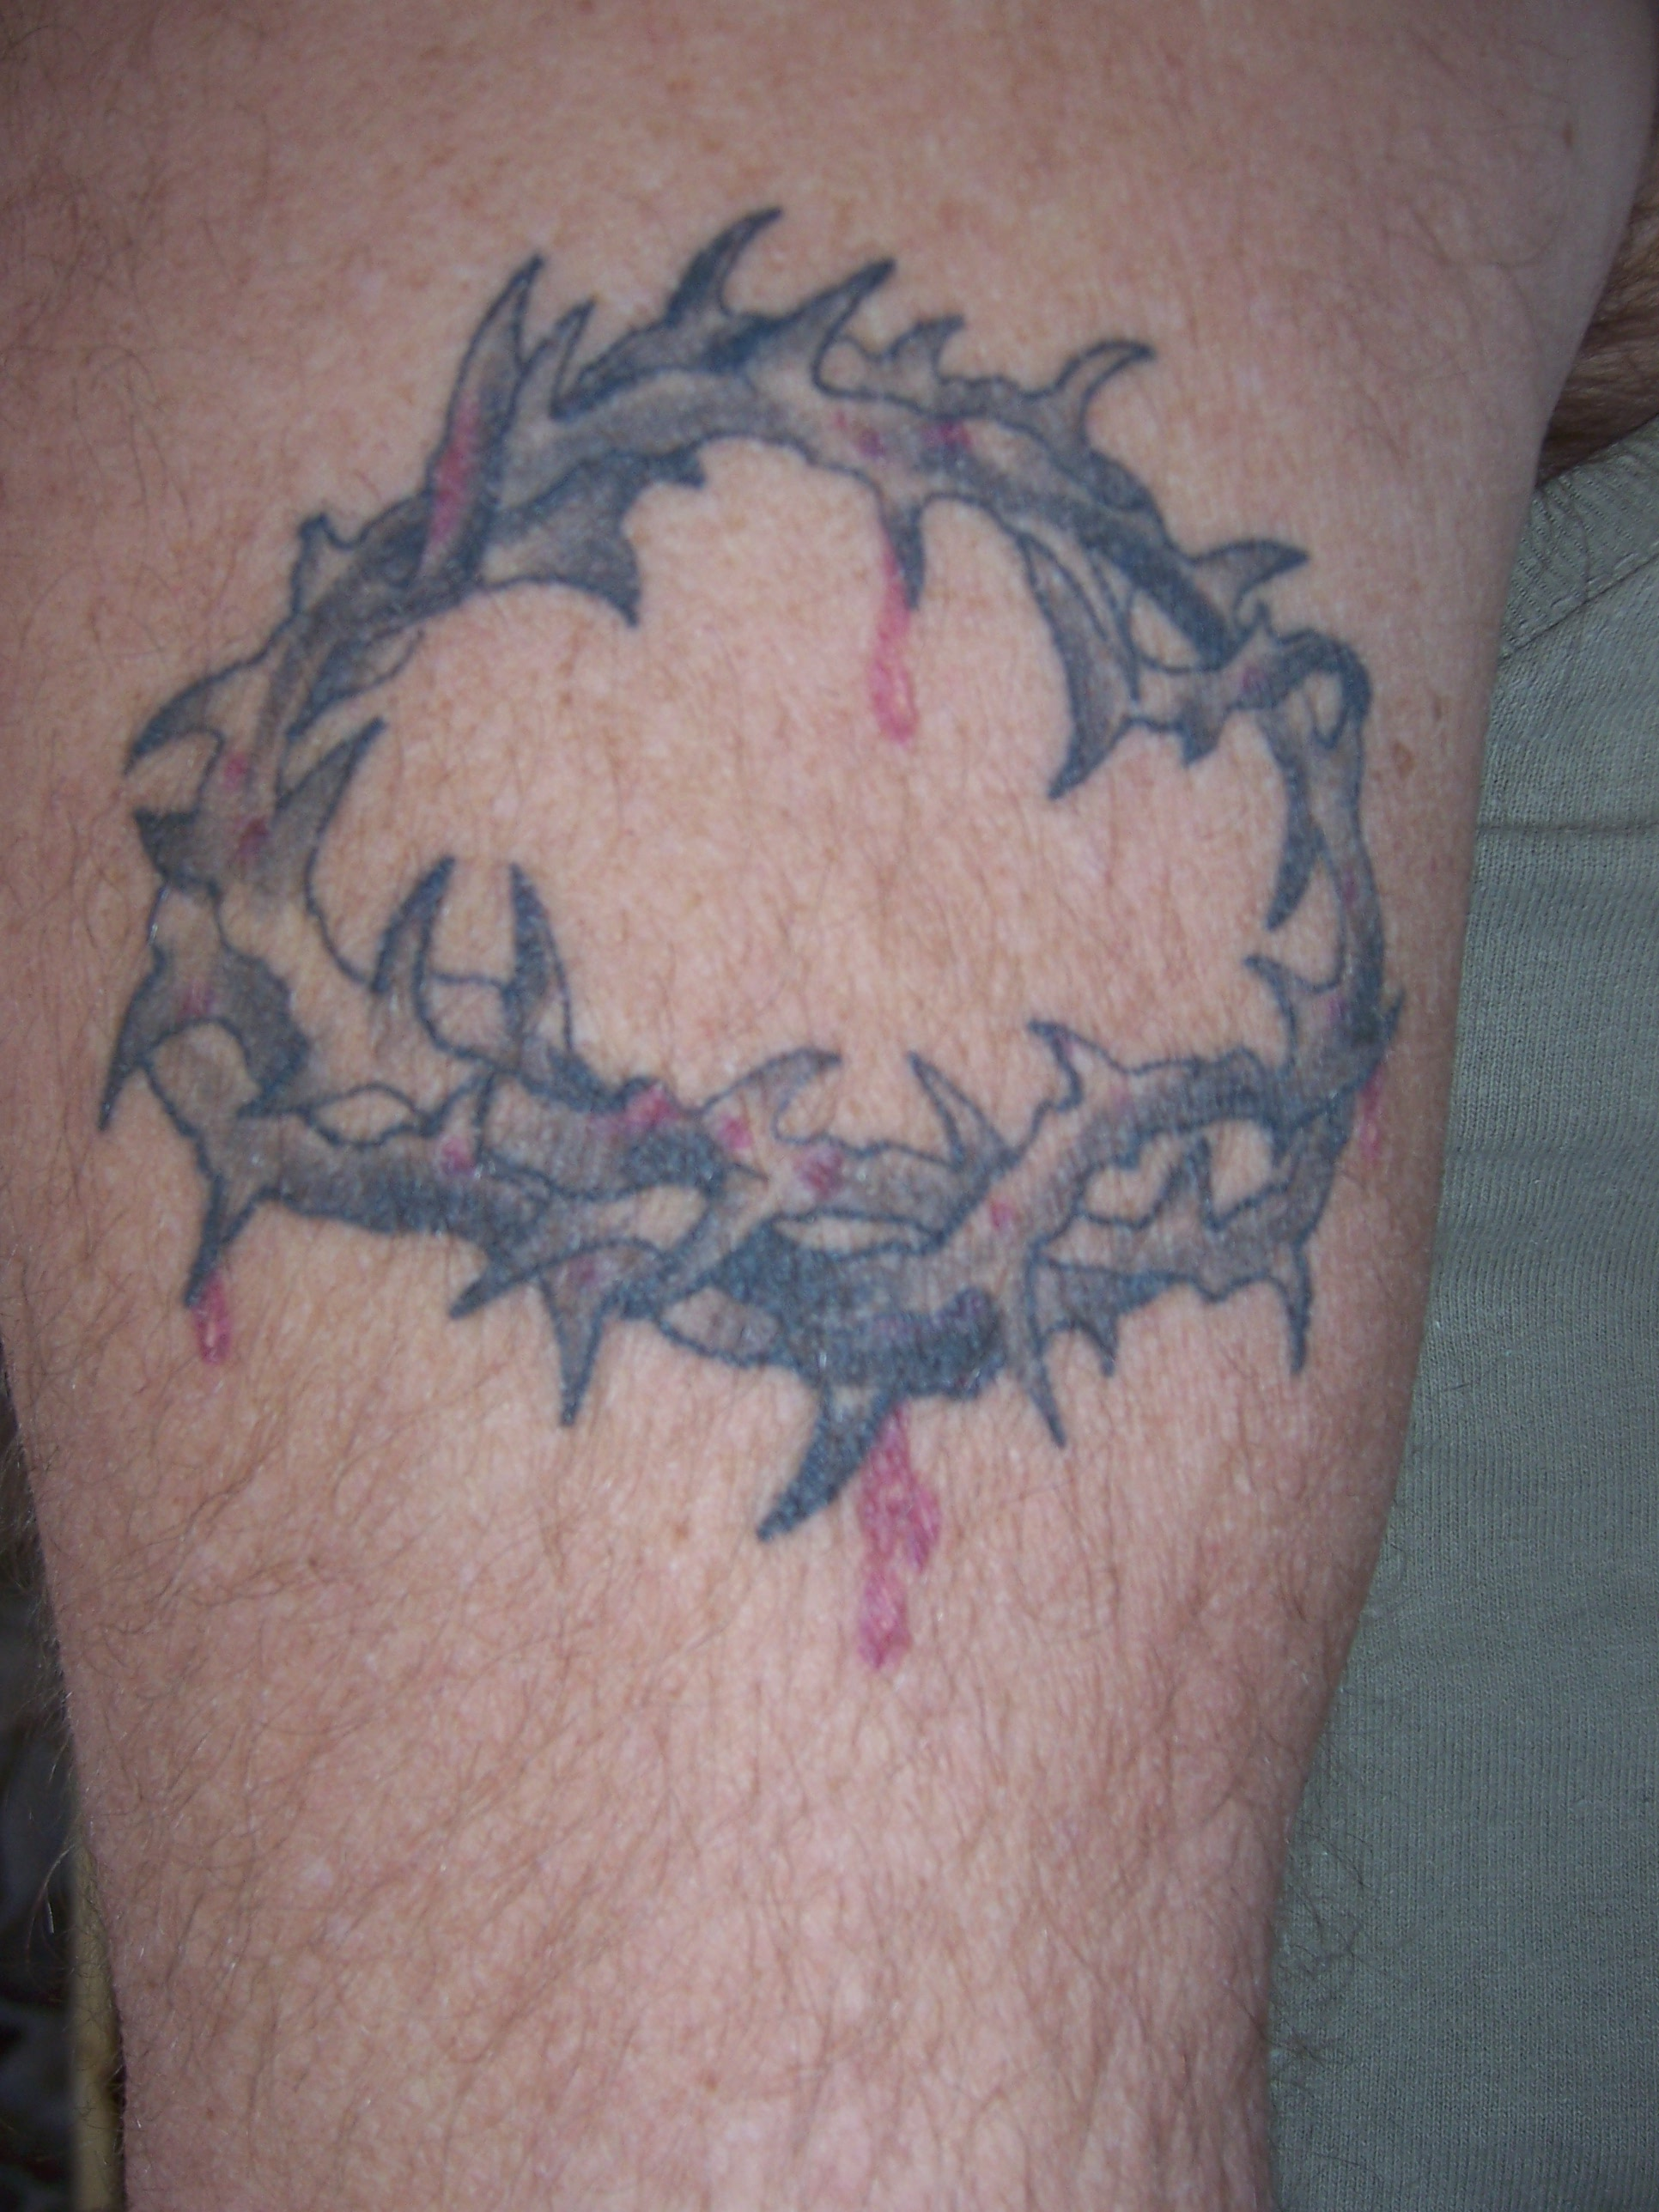 Crown of thorns wrist tattoo